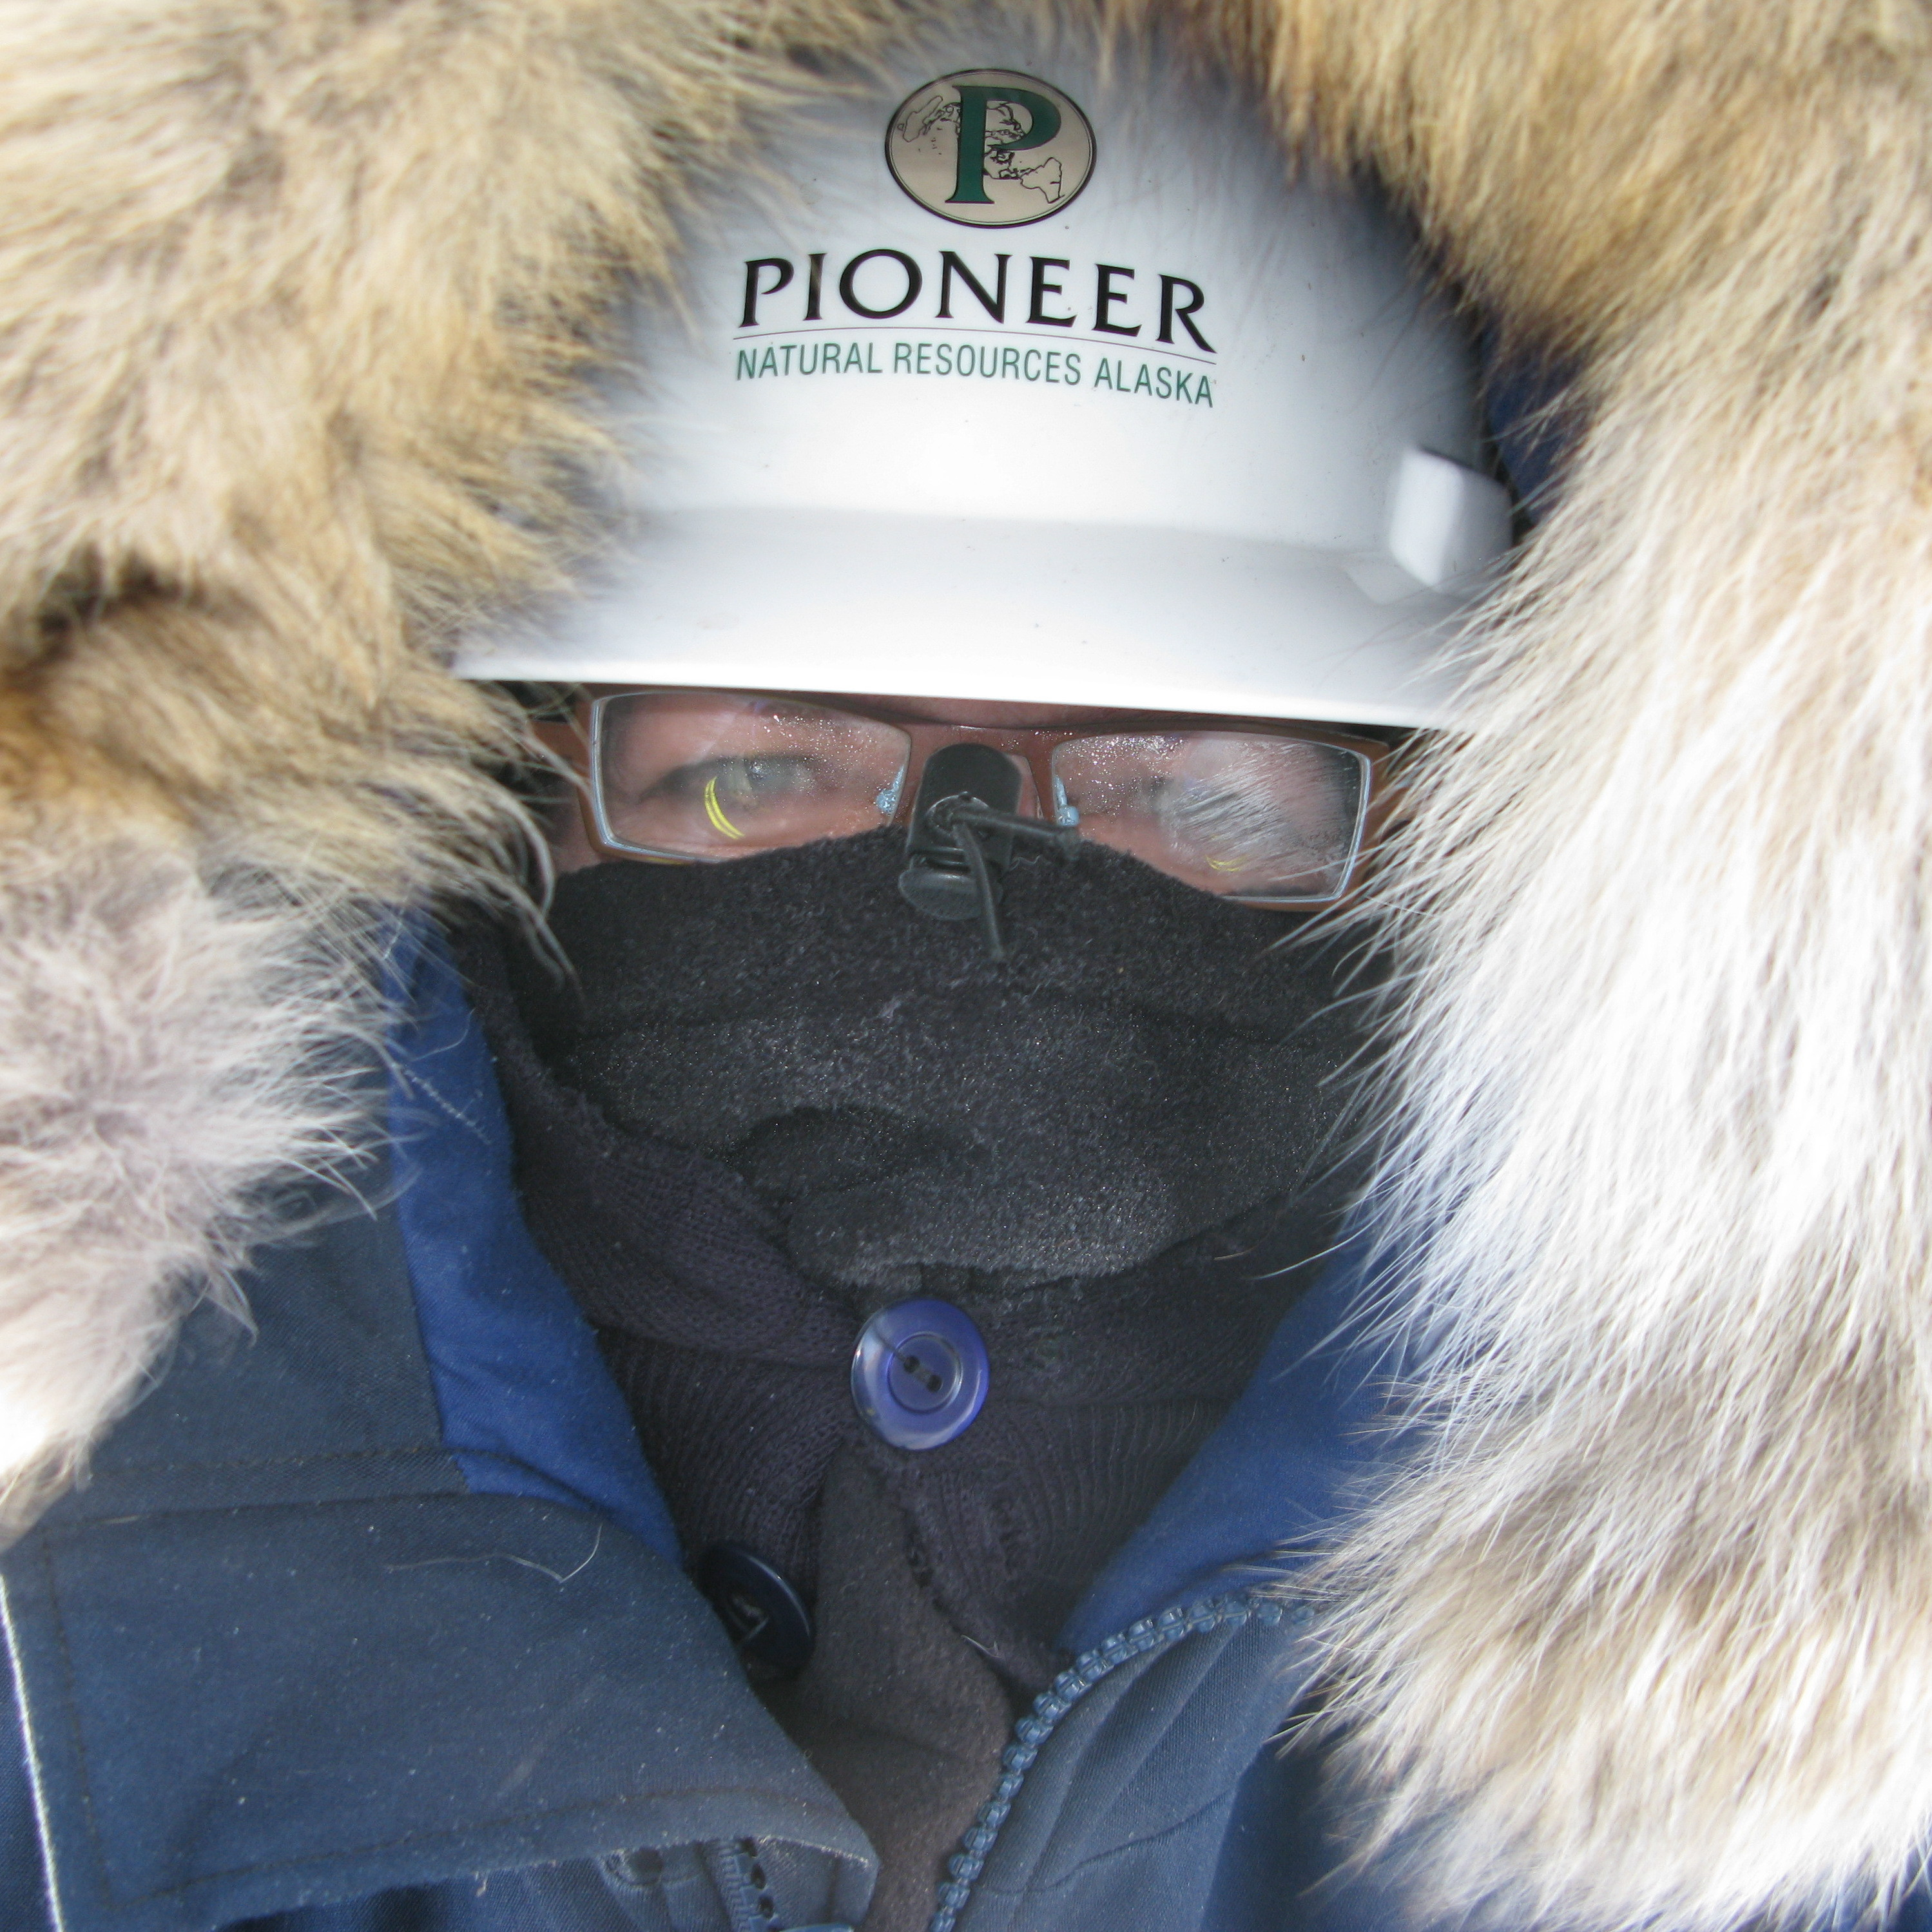 Author Jeanne Marie Laskas, bundled up on Oooguruk Island in Alaska, where she spent time on an oil rig.